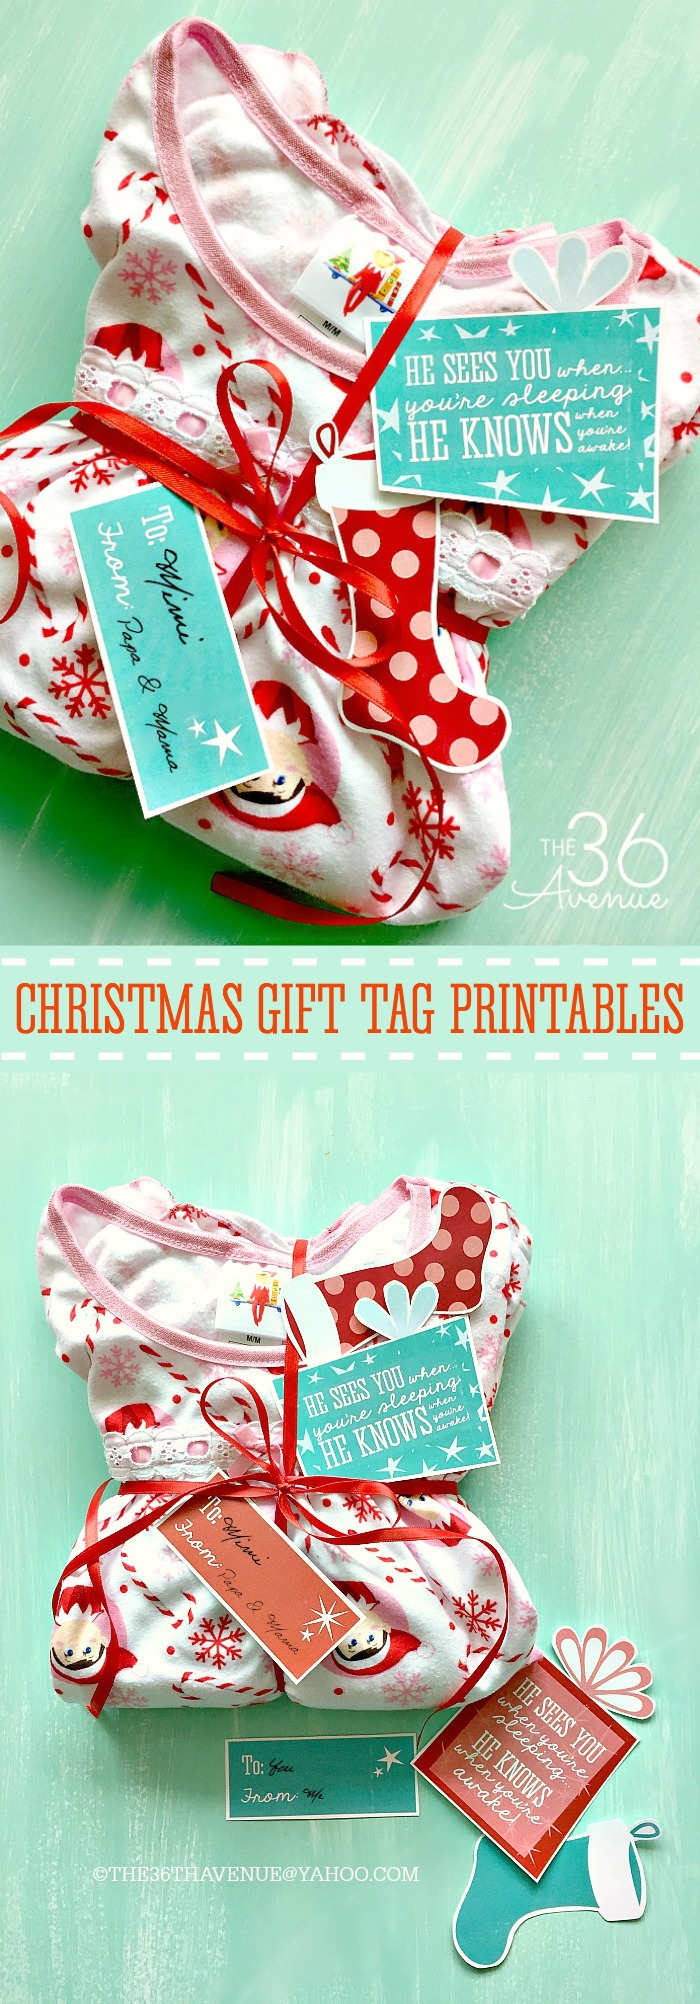 Christmas Gift Idea and Gift Tag Printable - Such an adorable way to start the Christmas Season!